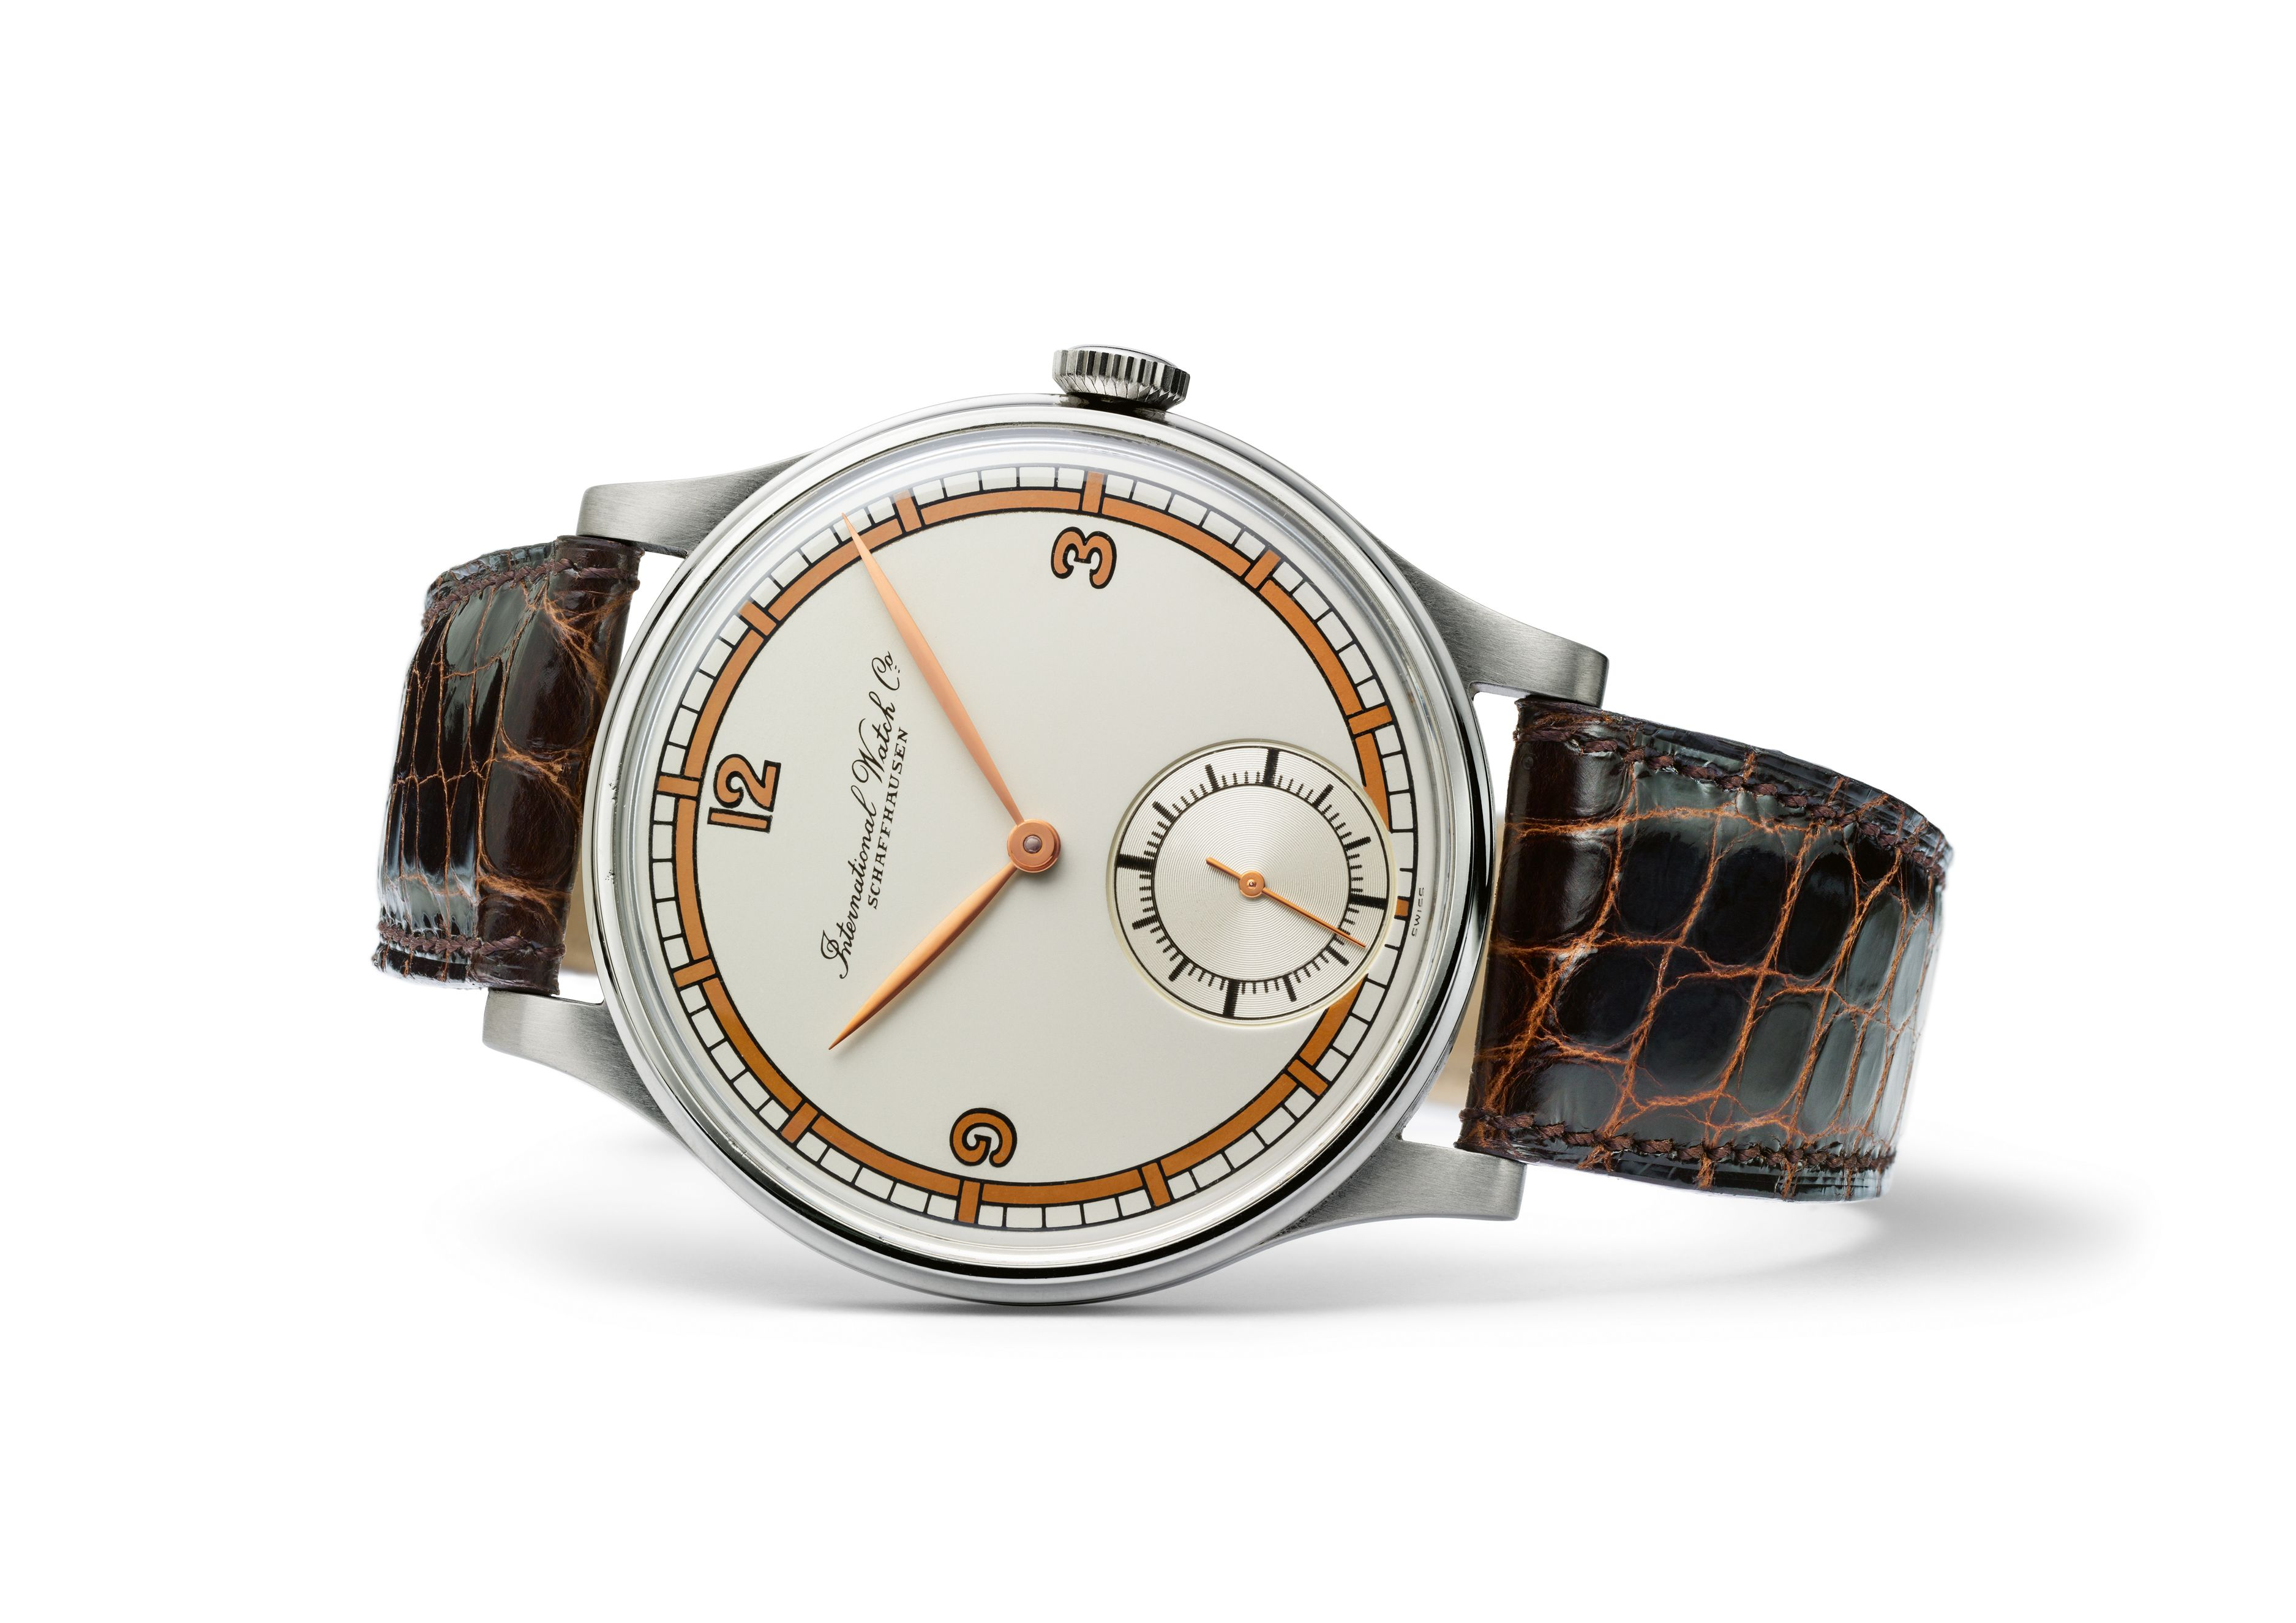 Glimpse into horological history with IWC's retrospective exhibition